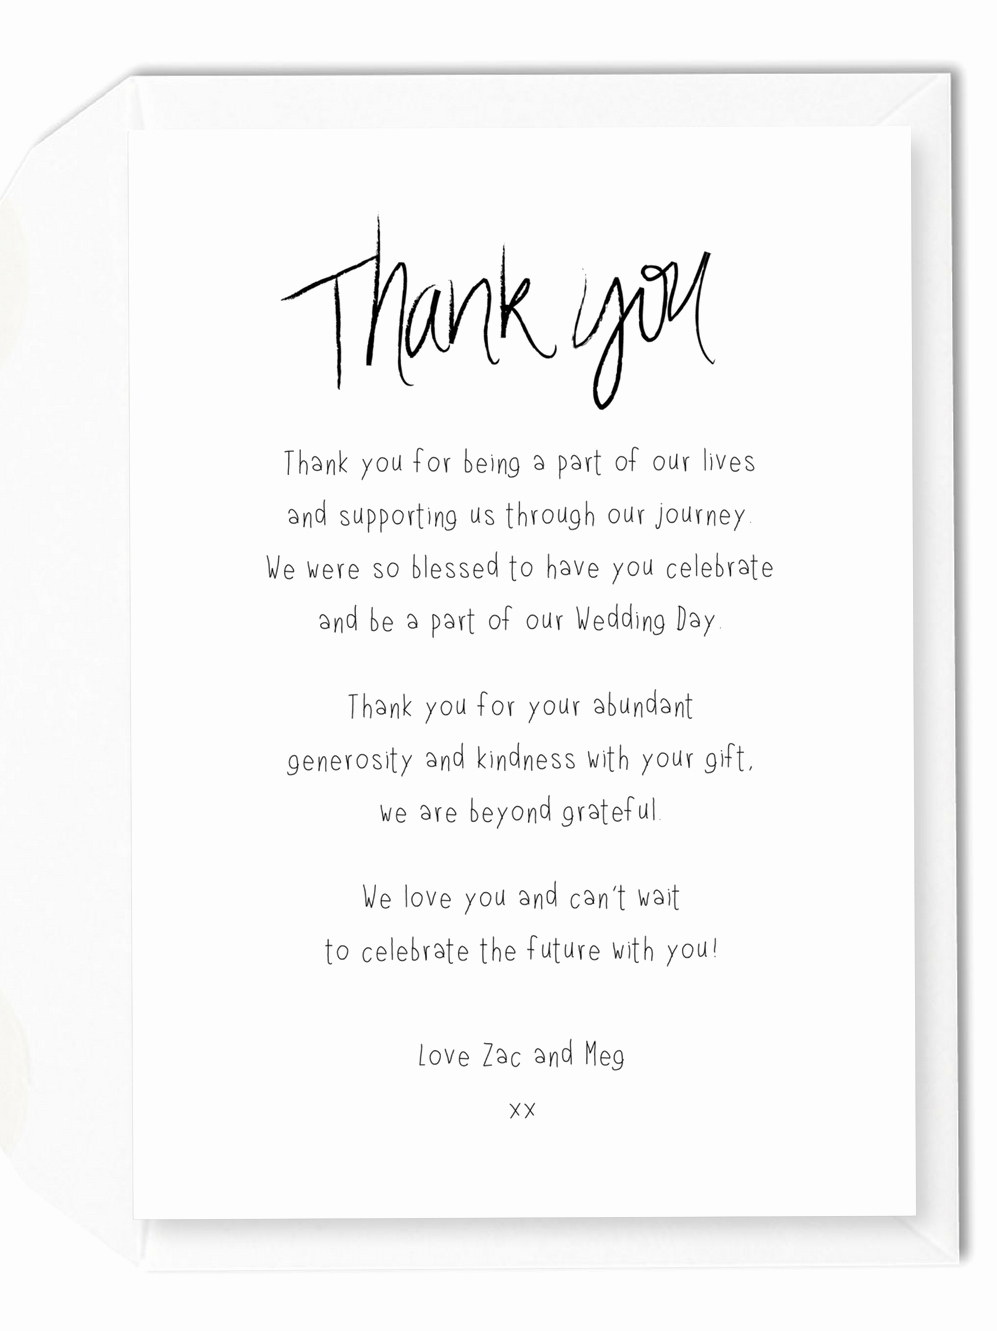 Gift Certificate Wording Examples Luxury 7 Wording Ideas for Your Wedding Thank You Cards